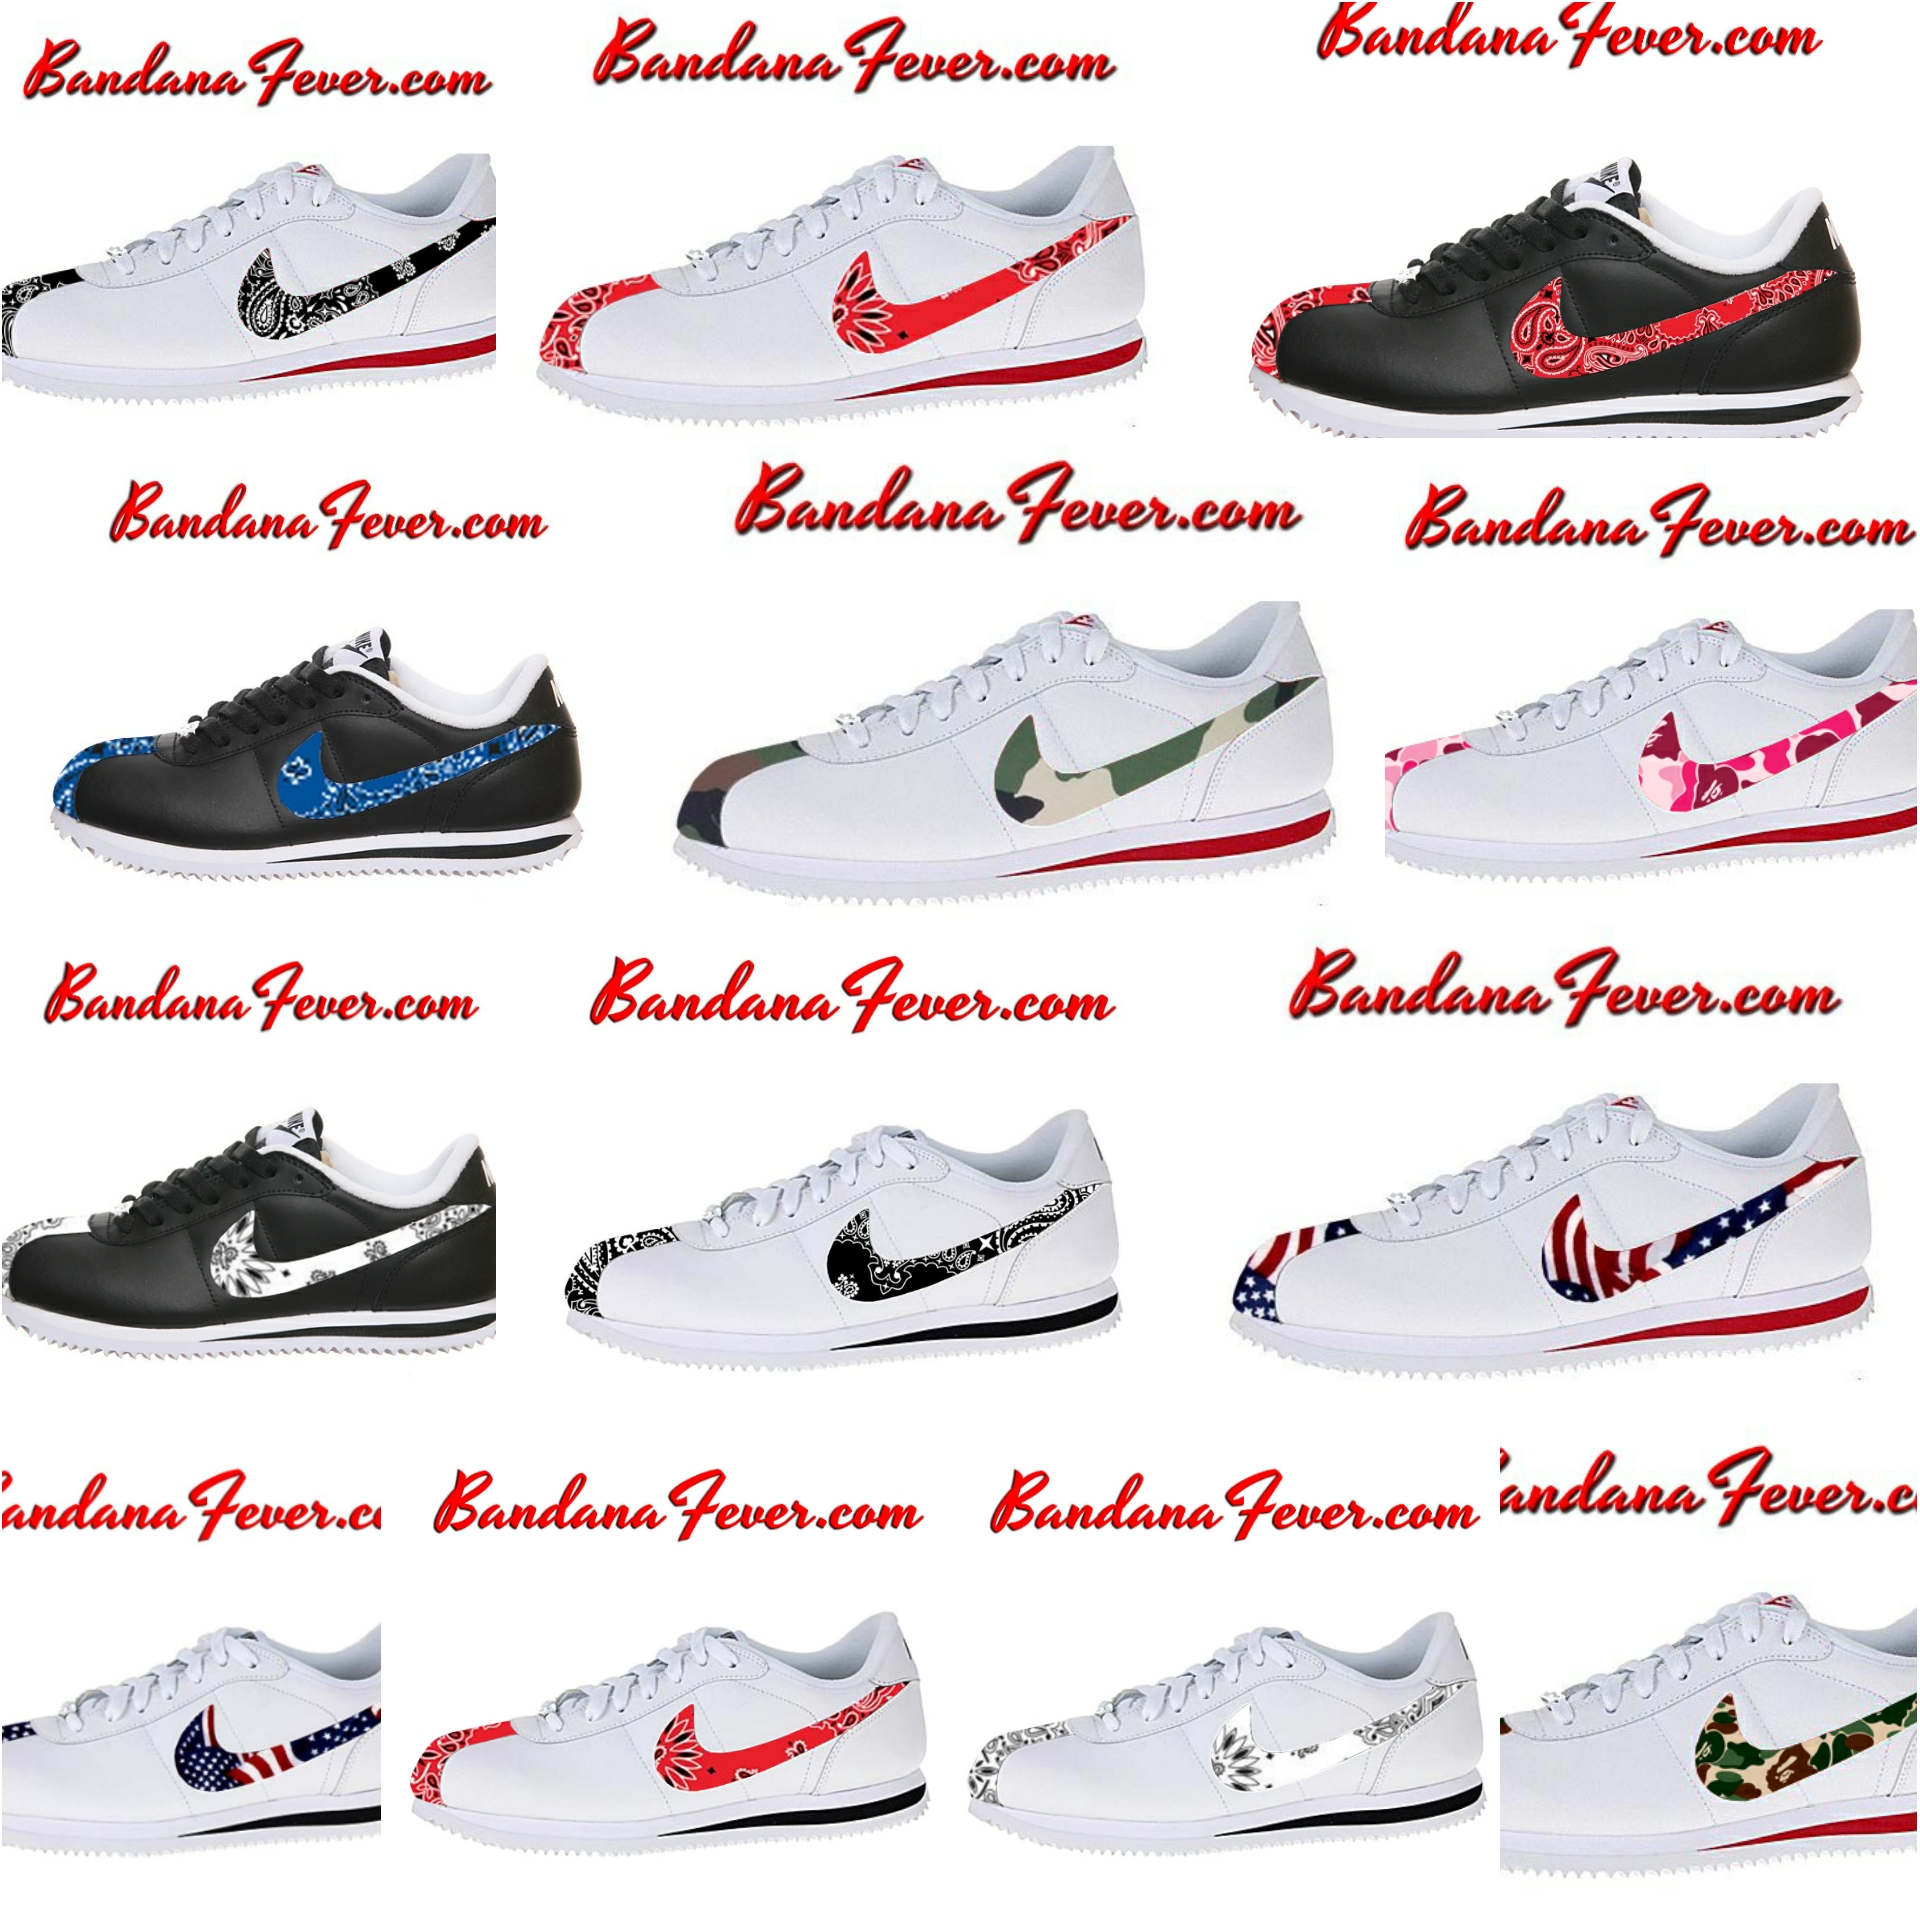 separation shoes 86010 ccf19 australia bandana fever custom bandana nike cortez white navy navy bandana  whole cortez nikes a24ef f5dd5  get design of the day new nike cortez  styles ...